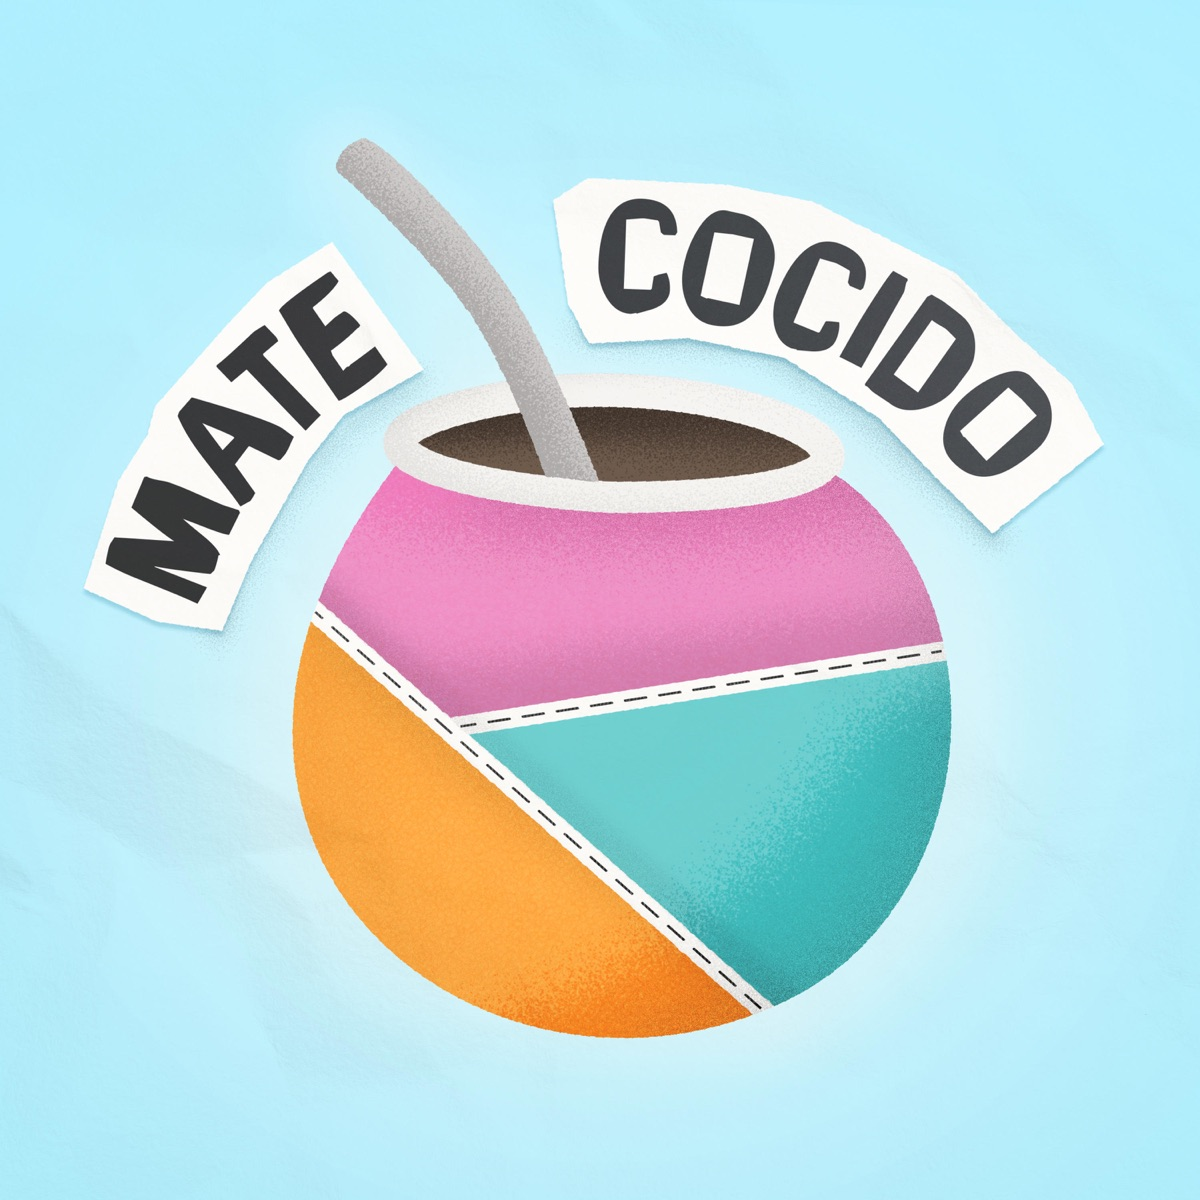 Mate Cocido